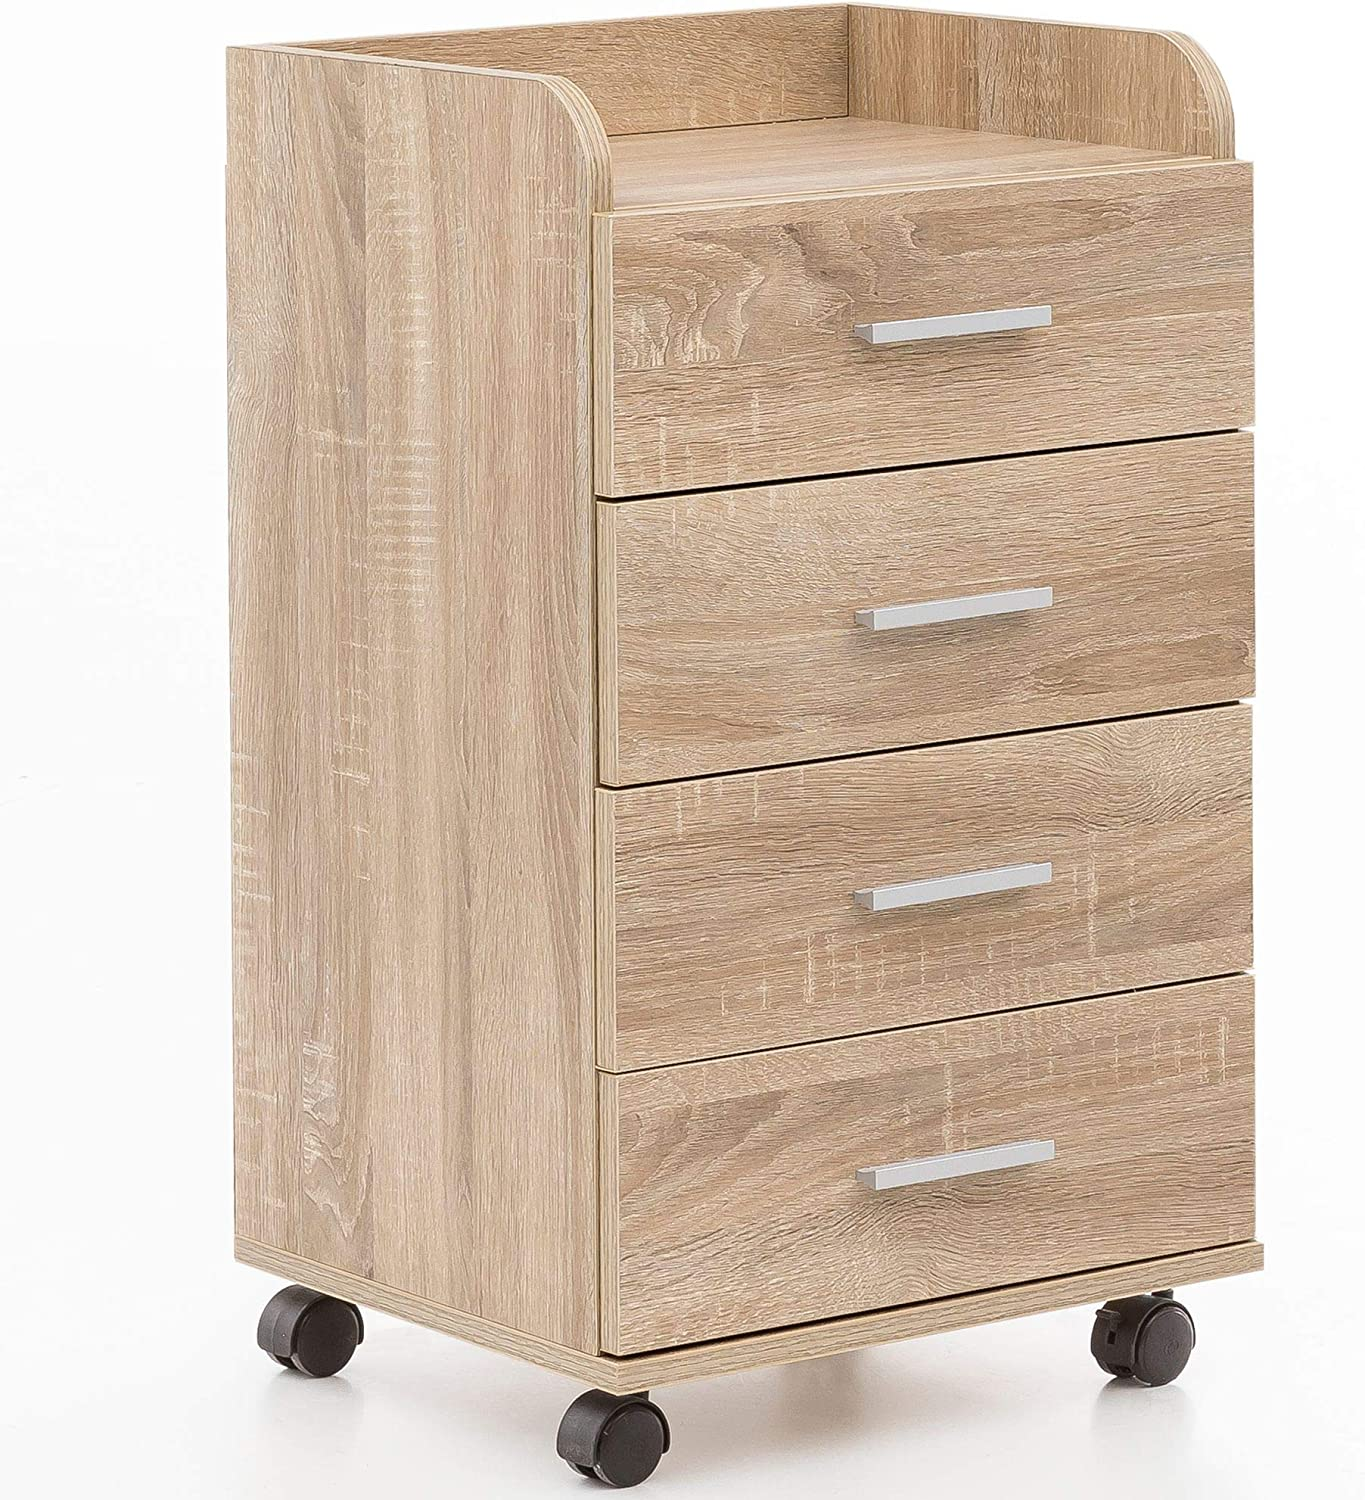 Wohnling WL16.16 Rollcontainer, Holz, Sonoma, 16 x 16,16 x 16 cm